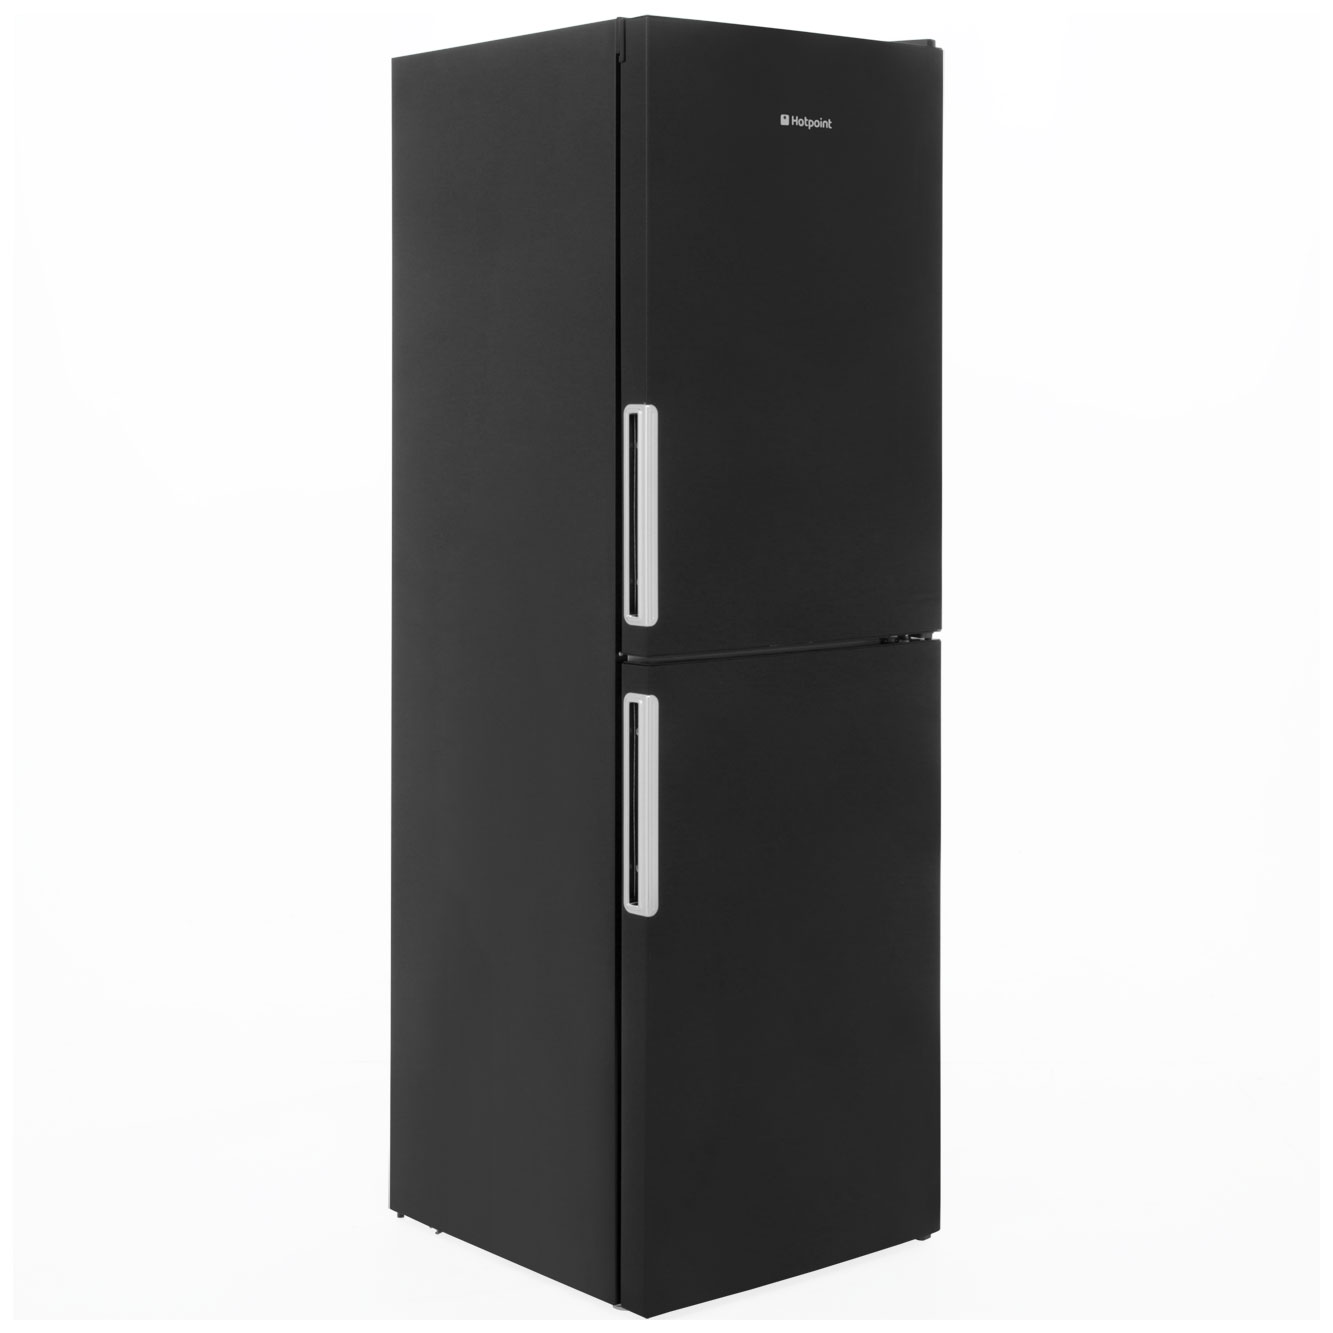 Hotpoint XAO85TIK Free Standing Fridge Freezer Frost Free in Black